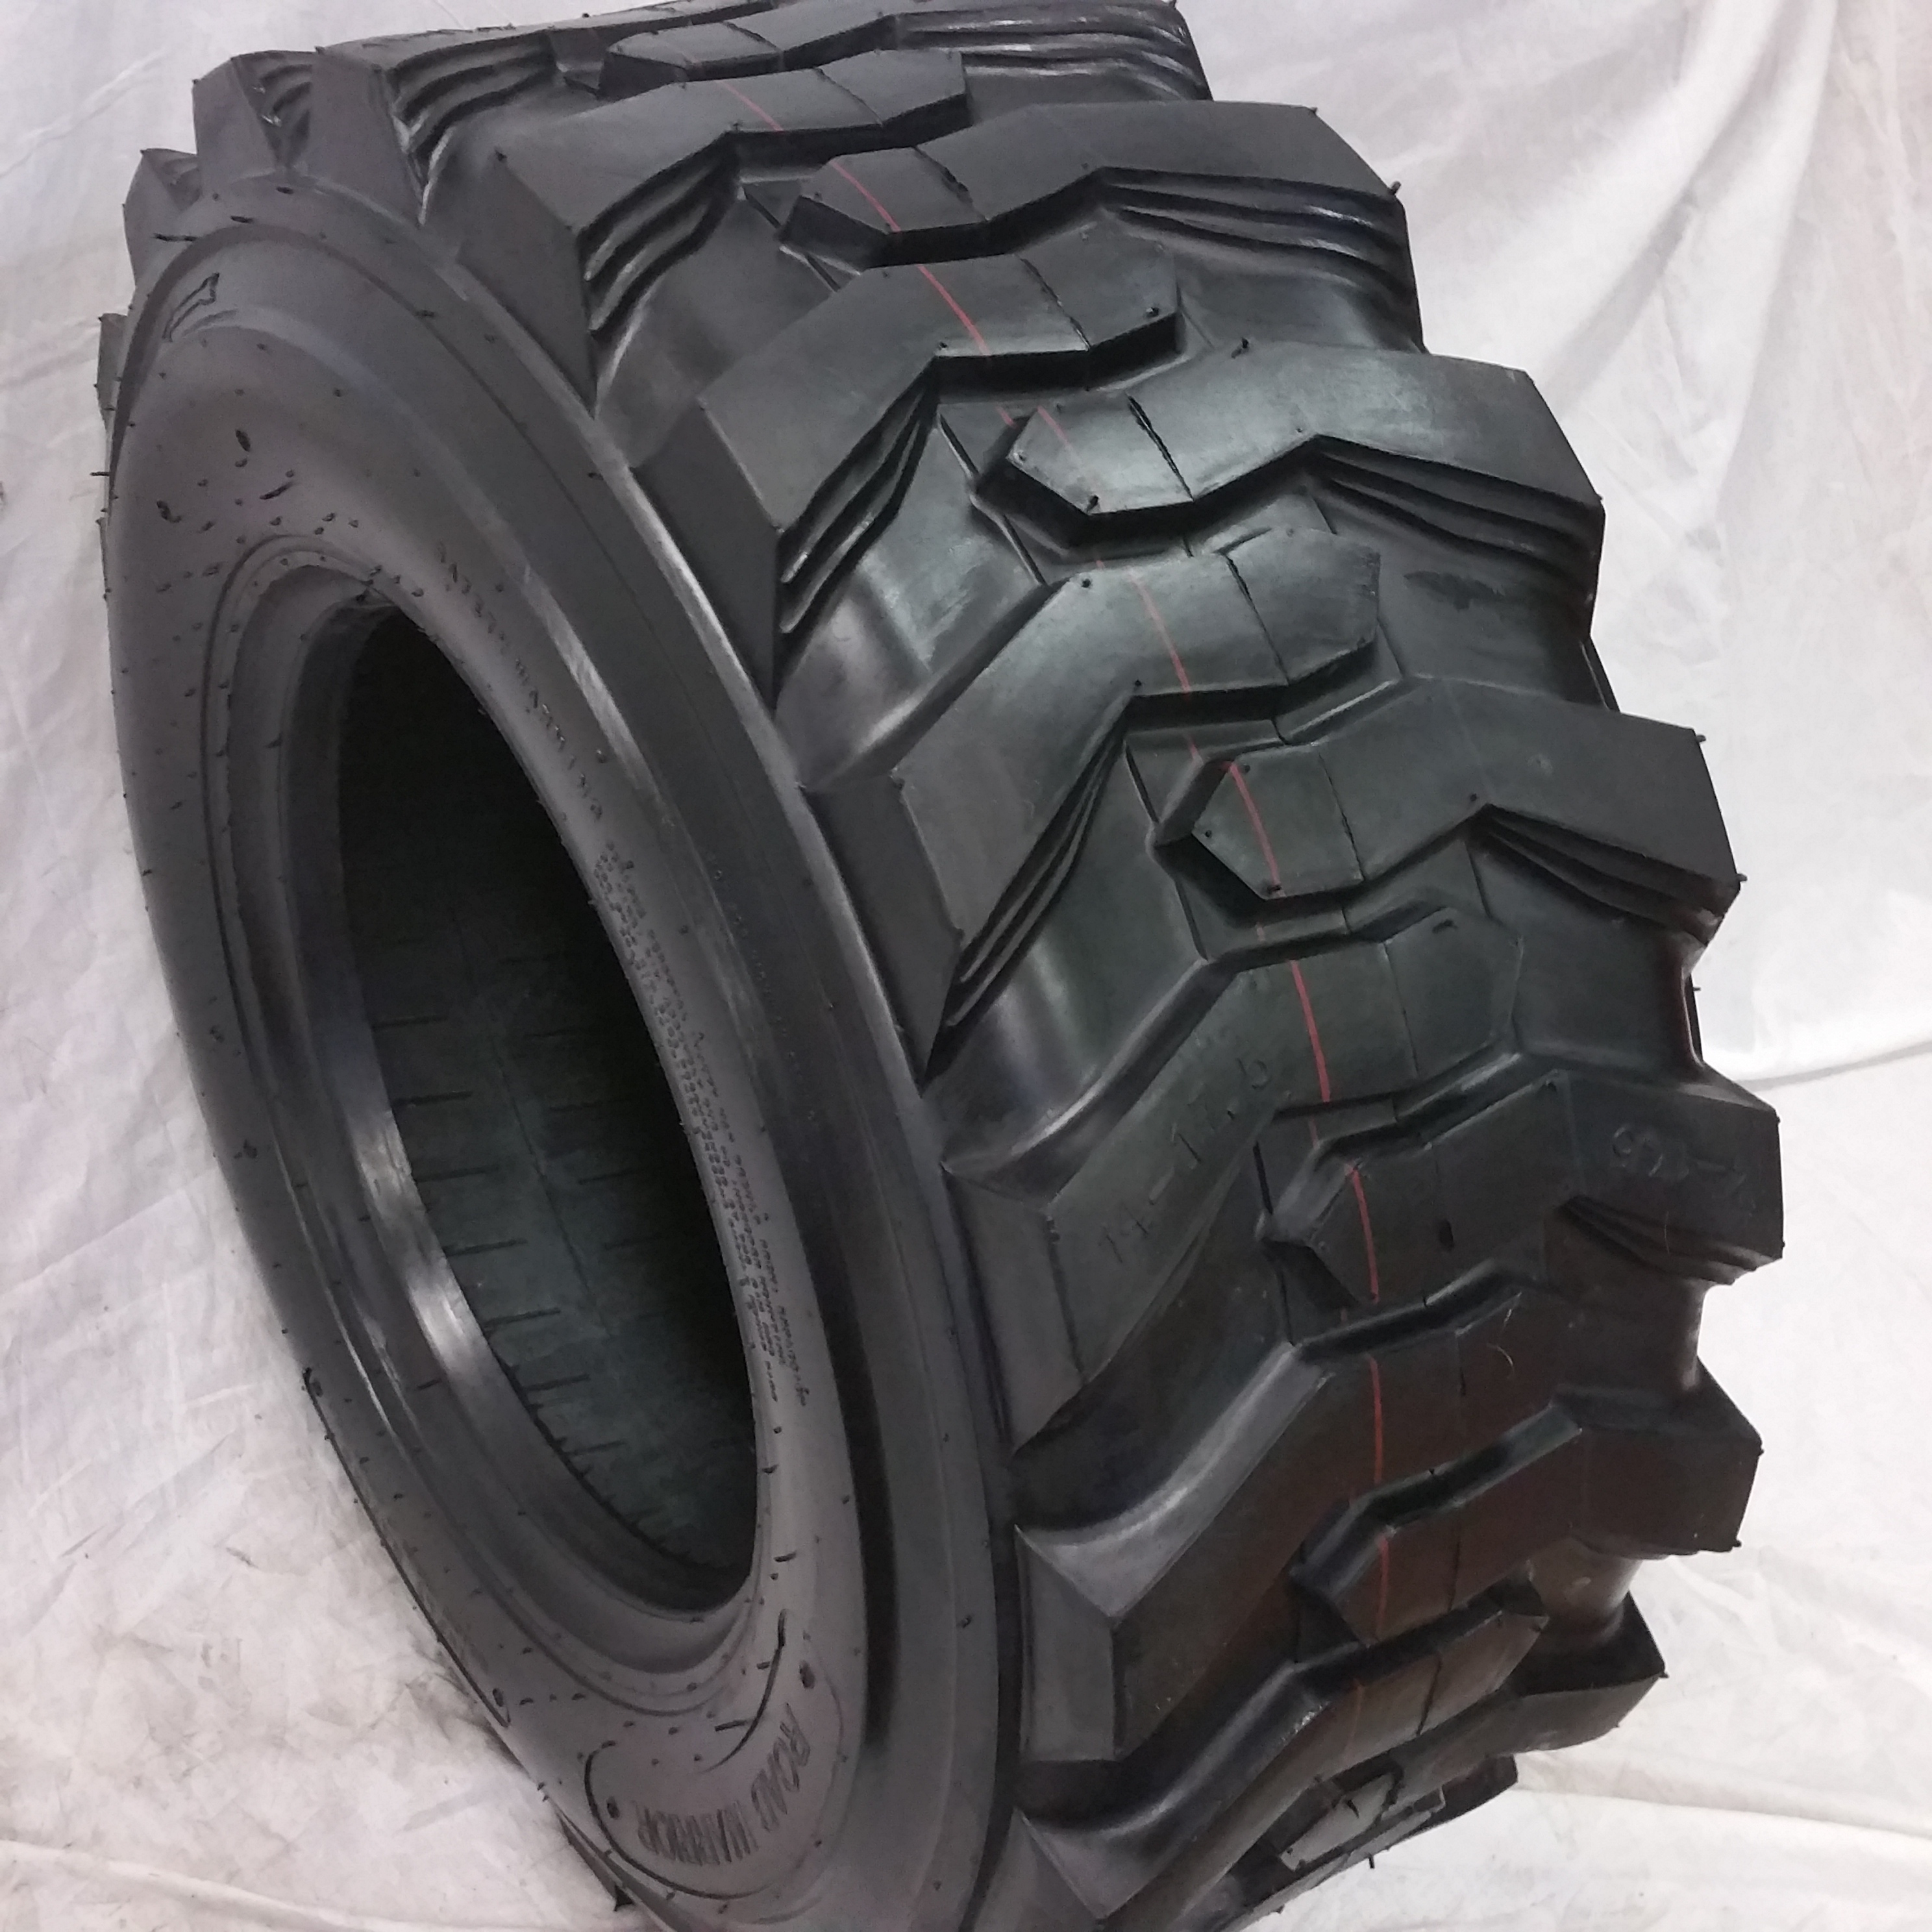 Truck Tires for Sale at Wholesale Prices 12-16.5 Skid Steer Tires 14 Ply